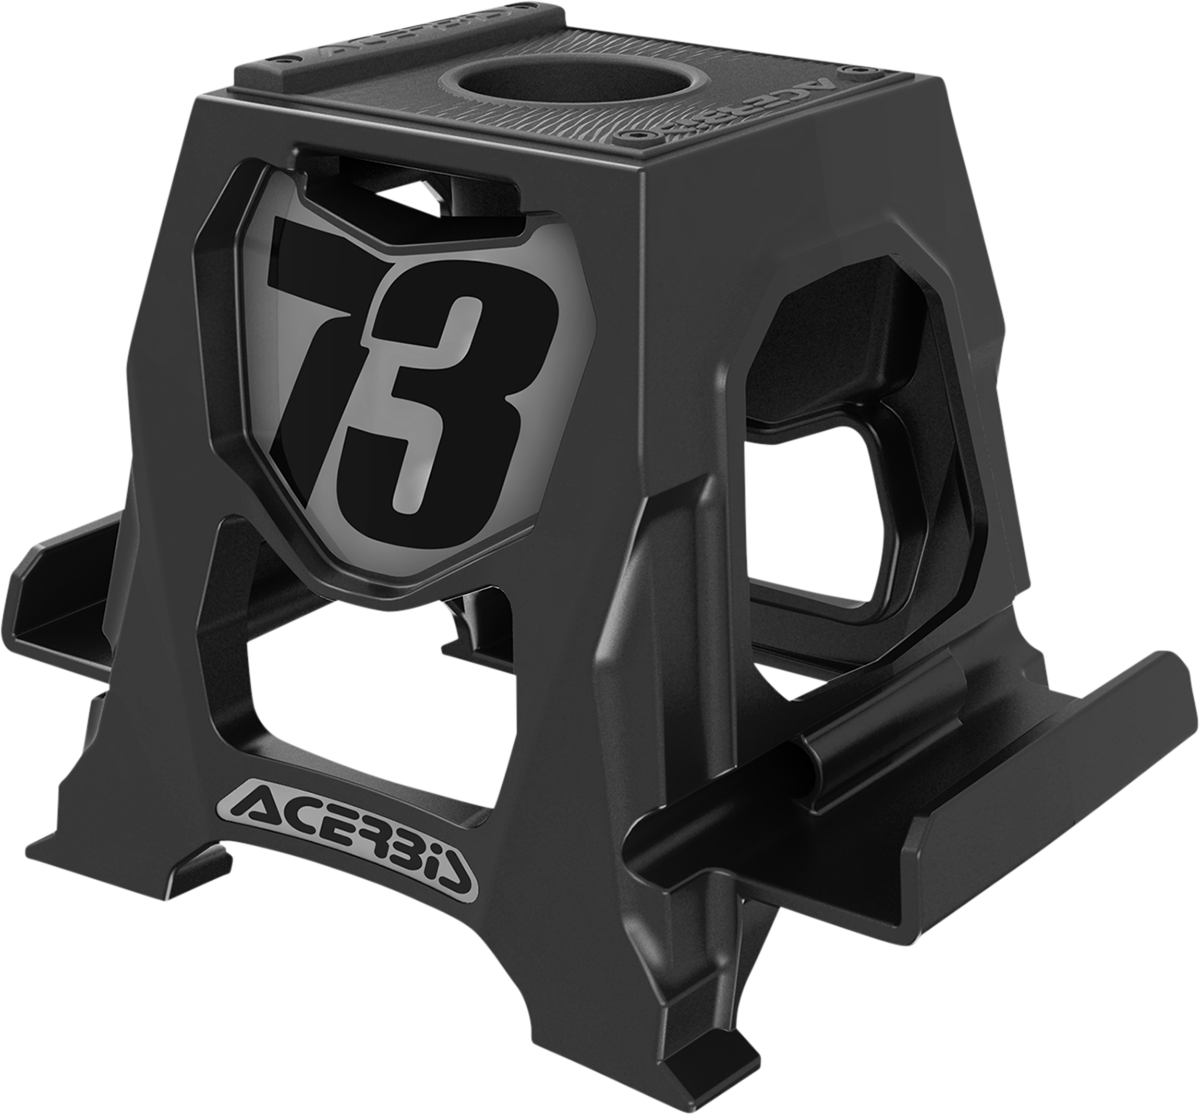 Acerbis Black Universal Cell Phone Table Dirbike Stand Holder